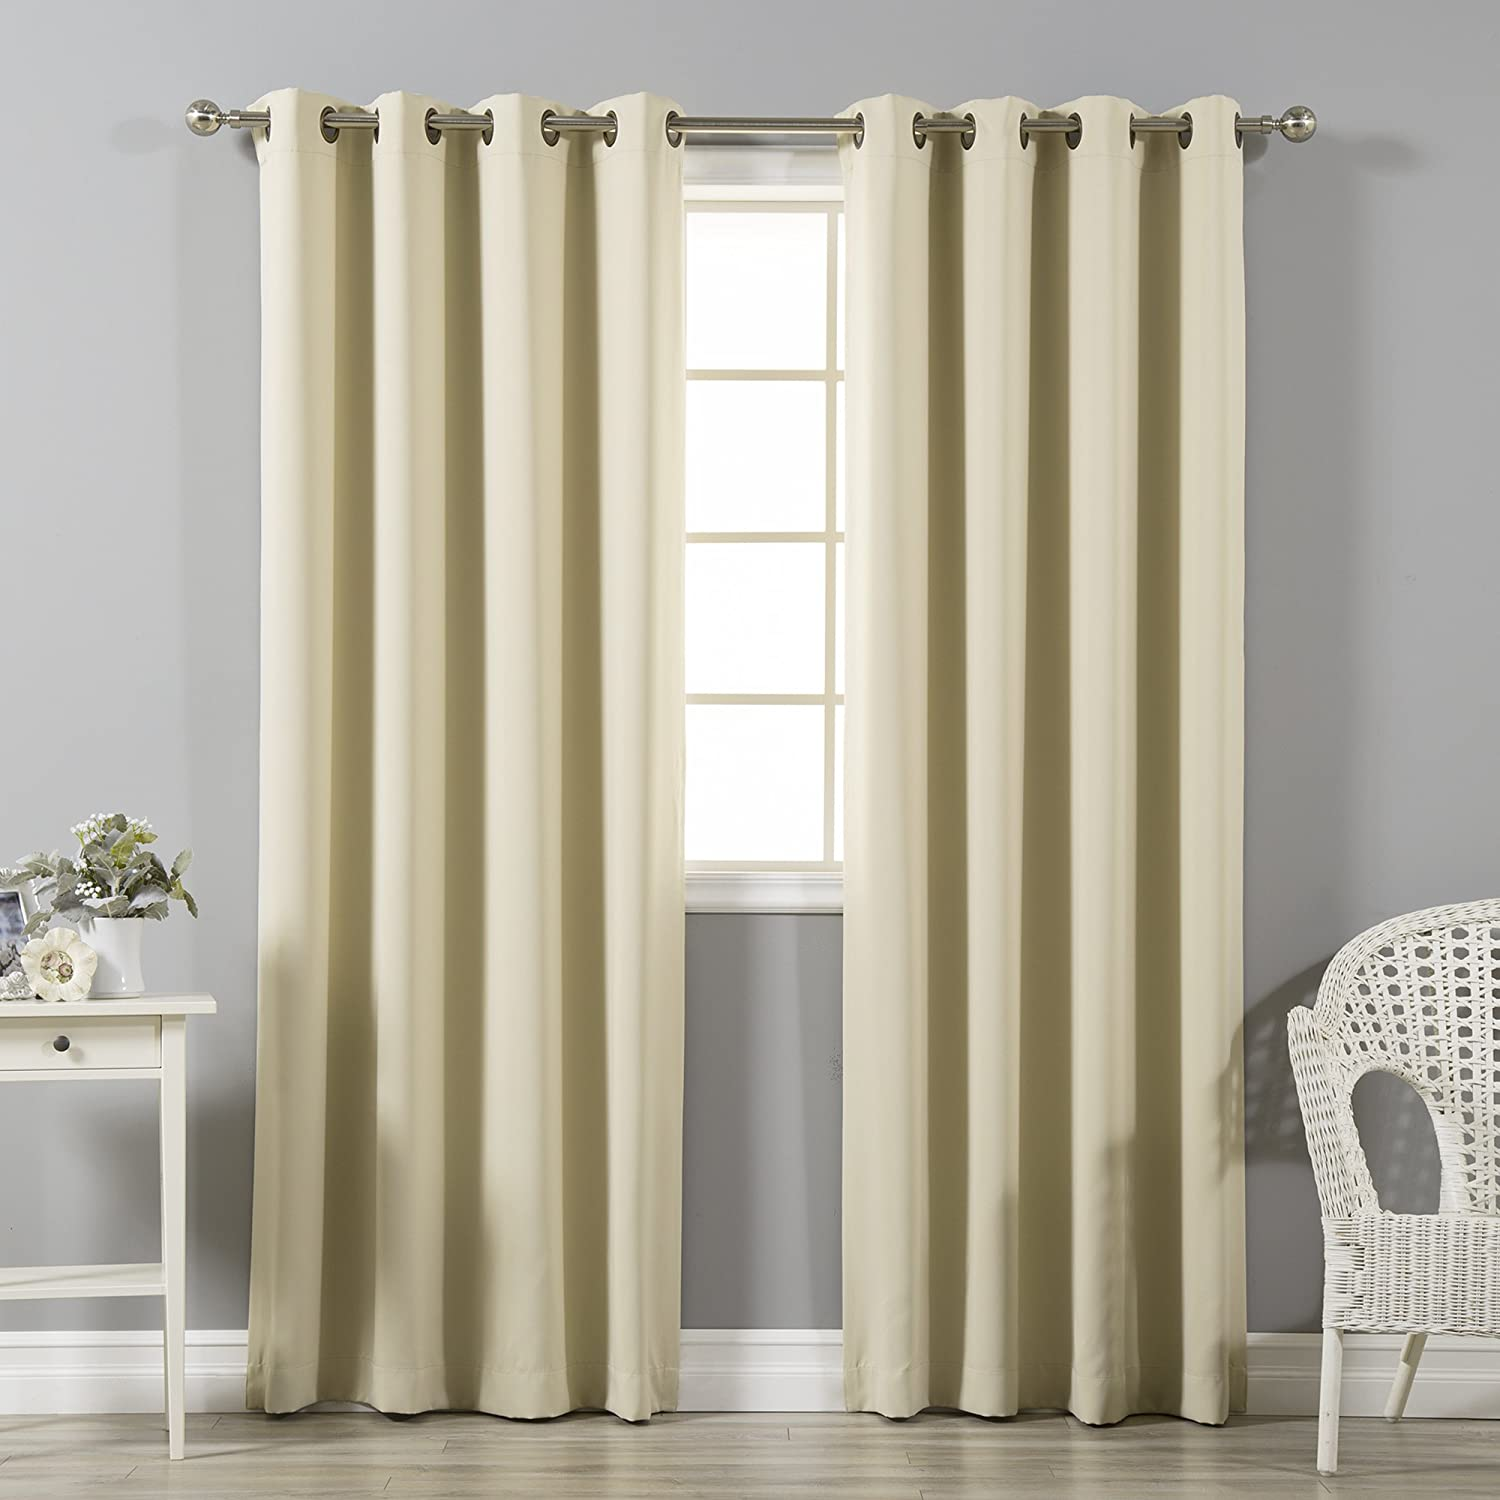 Thermal Insulated Blackout Curtains by Best Home Fashion